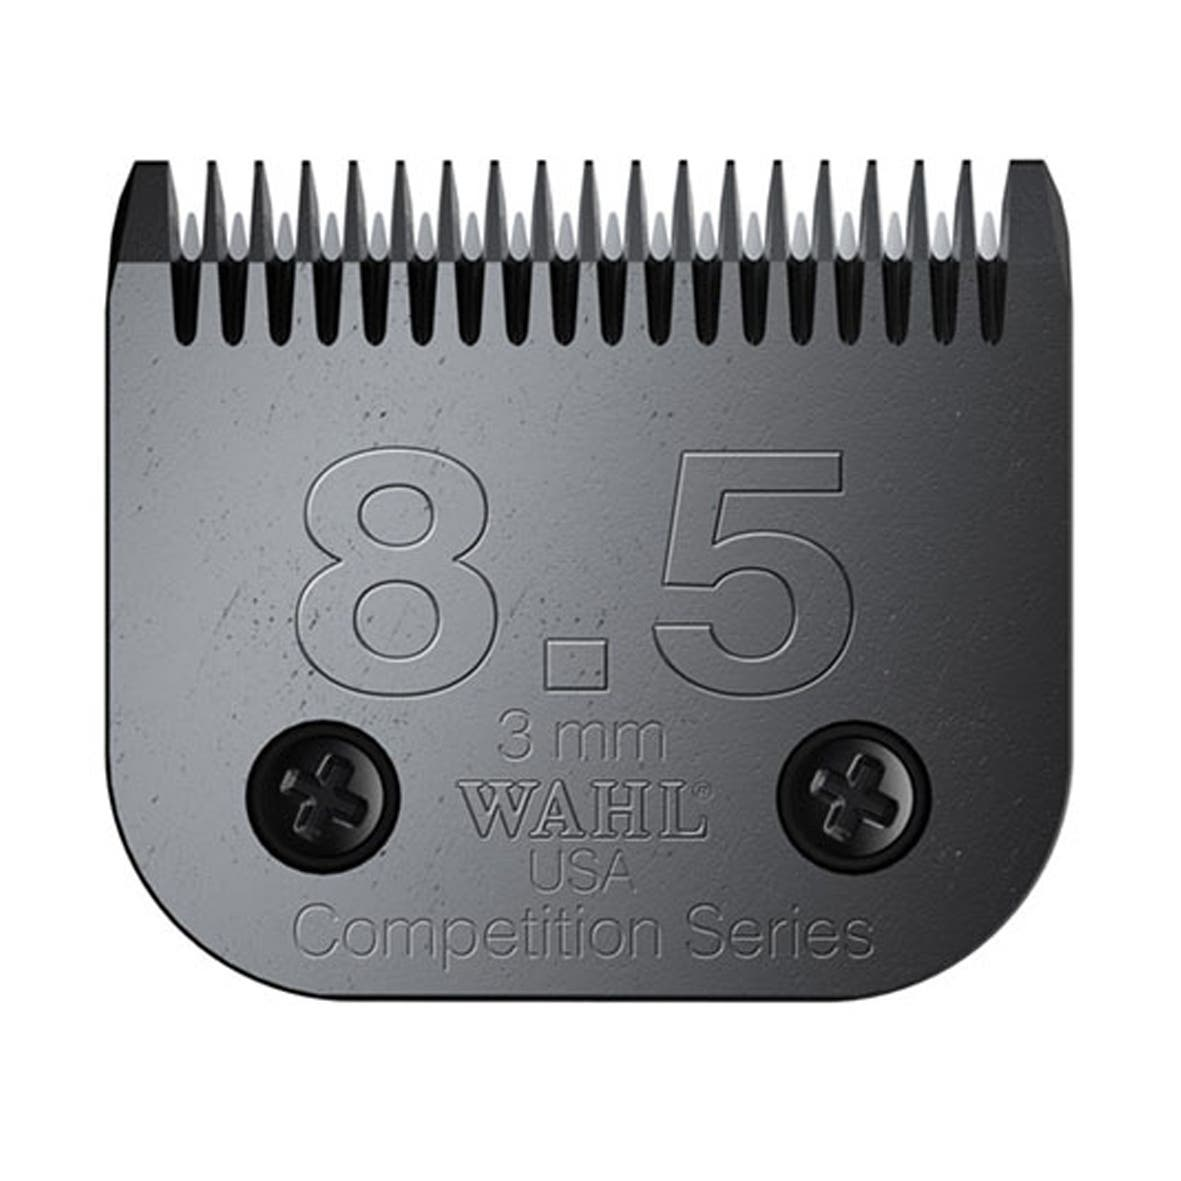 "Wahl ULTIMATE PET Blade Competition Grooming Clipper For Wahl Oster Andis Laube #8.5 - 2.8mm (1/8"")"